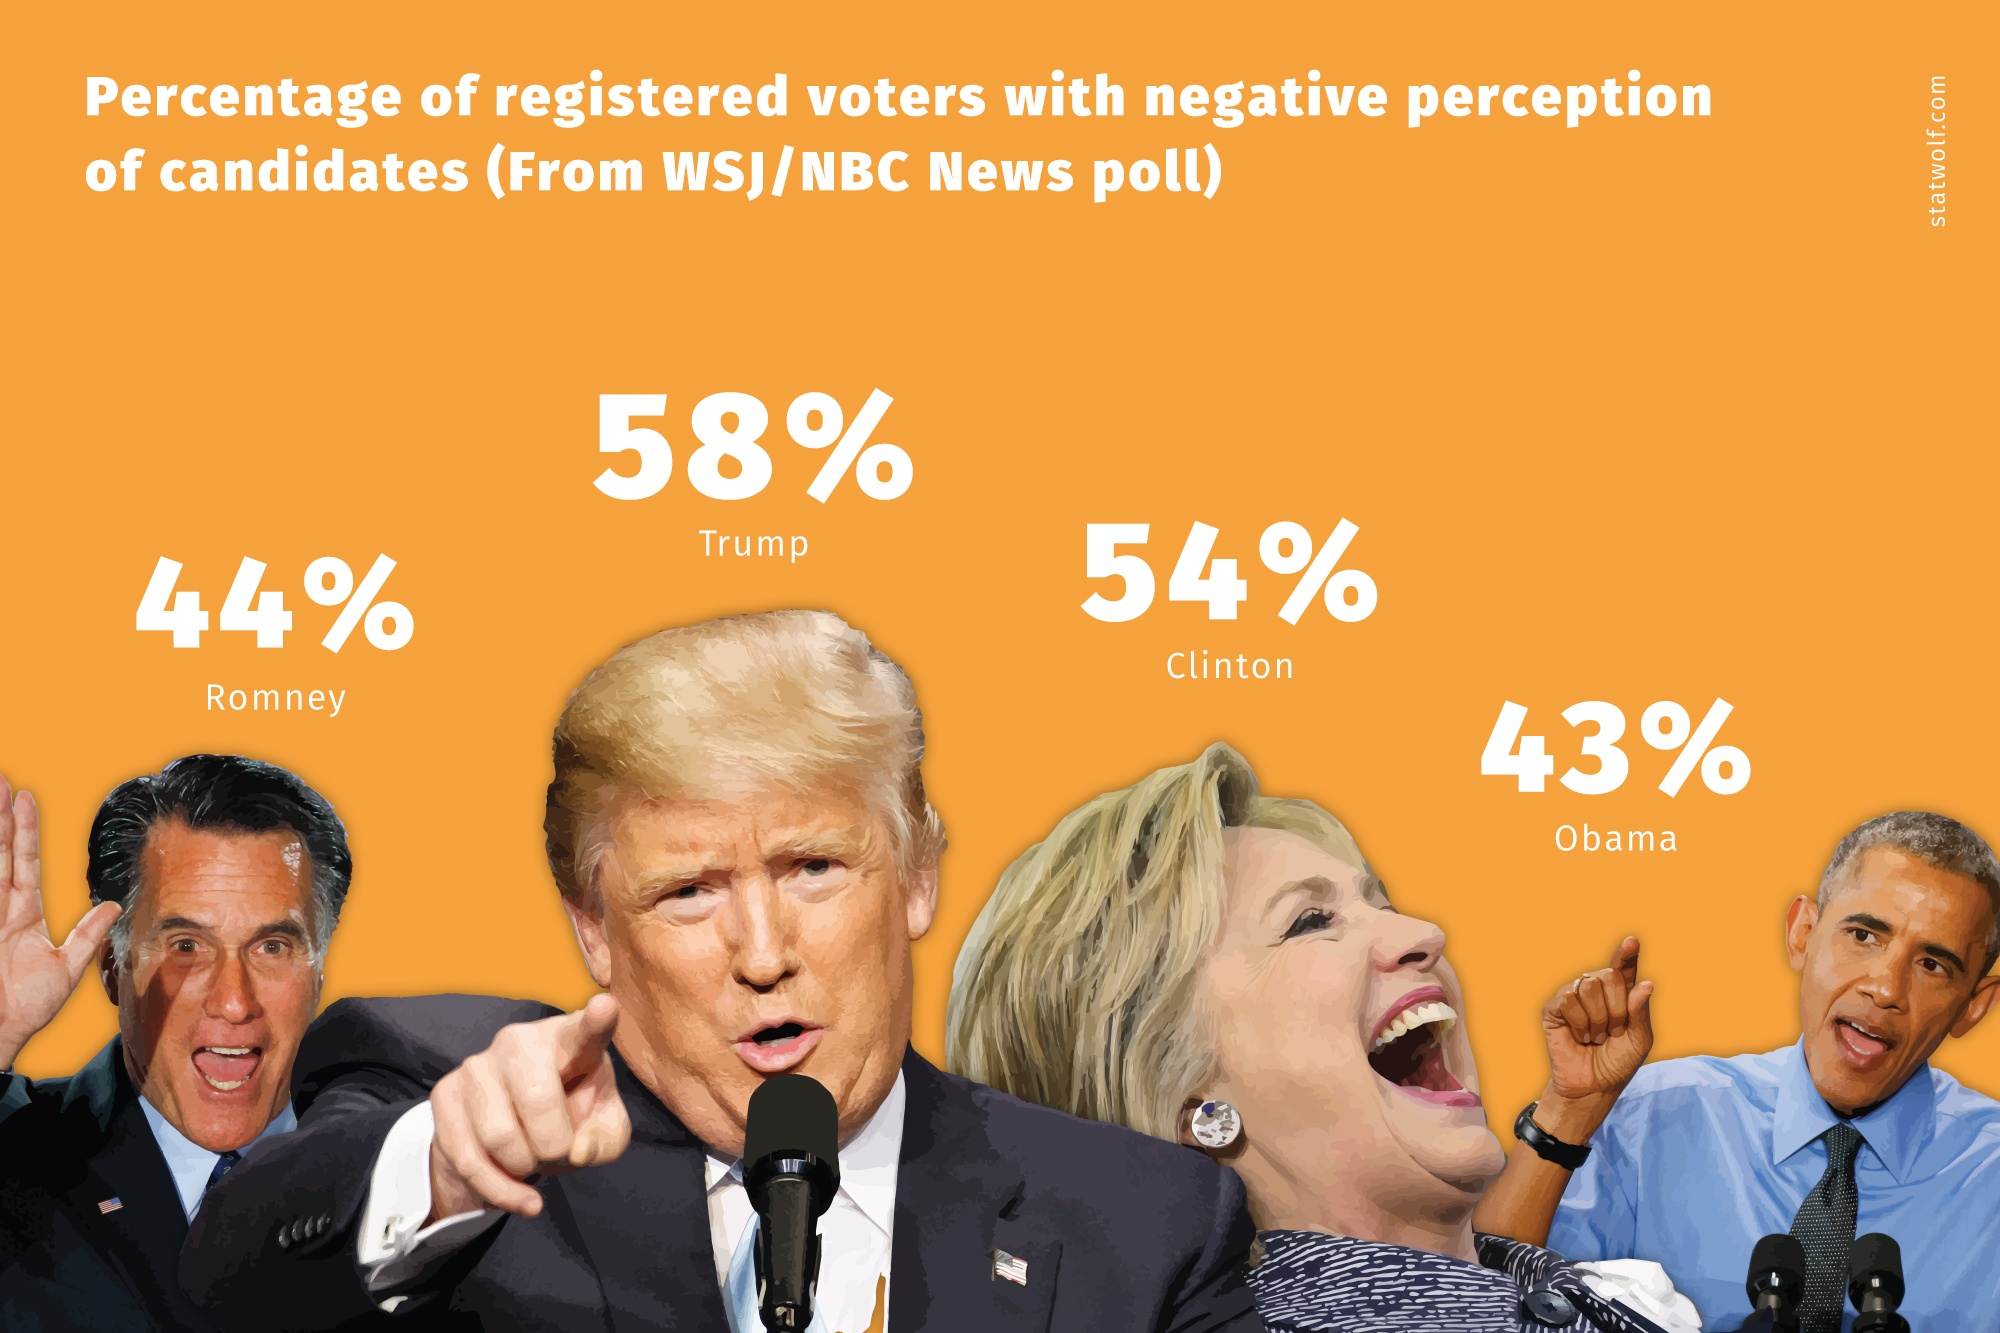 Percentage Of Ragistered Voters With Negative Perception Of Candidates(From WSJ/NBC News Poll)